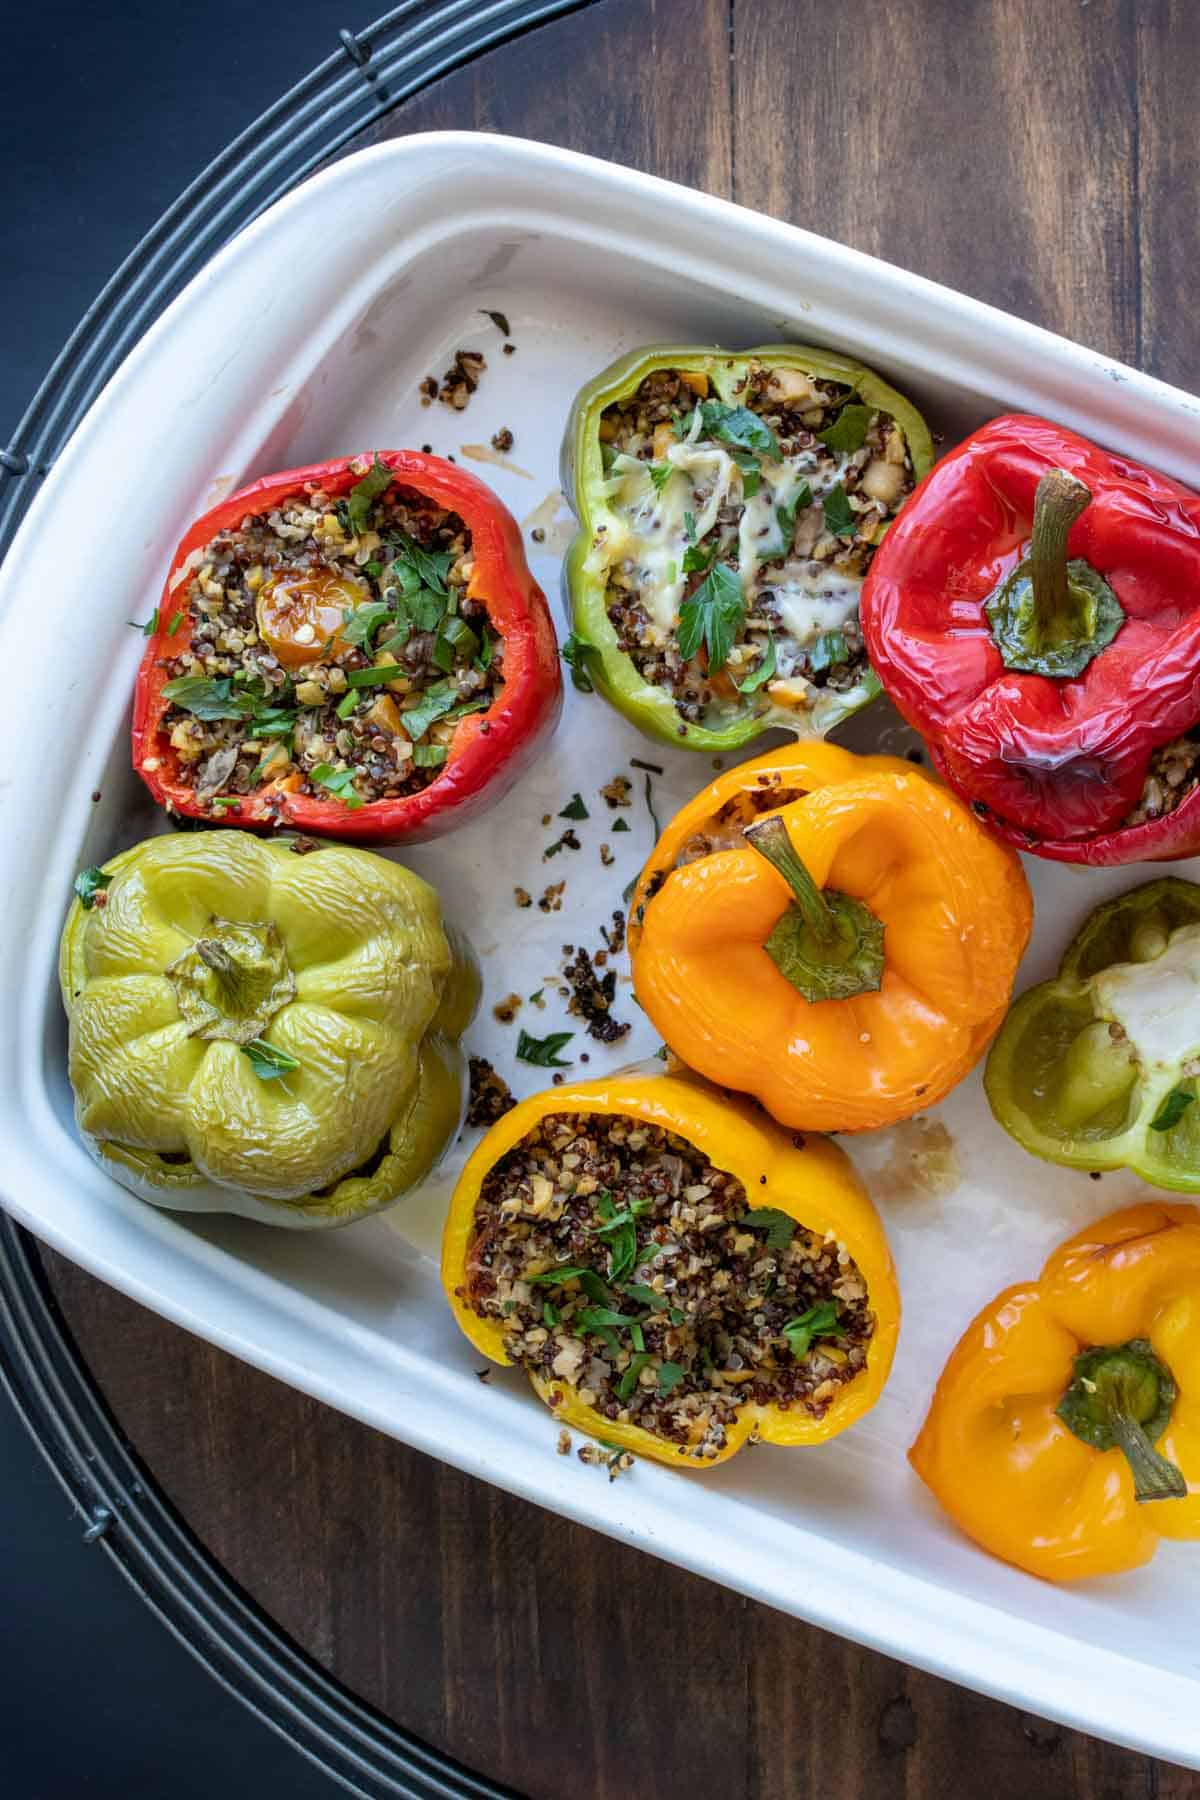 Top view of stuffed peppers in a white baking dish